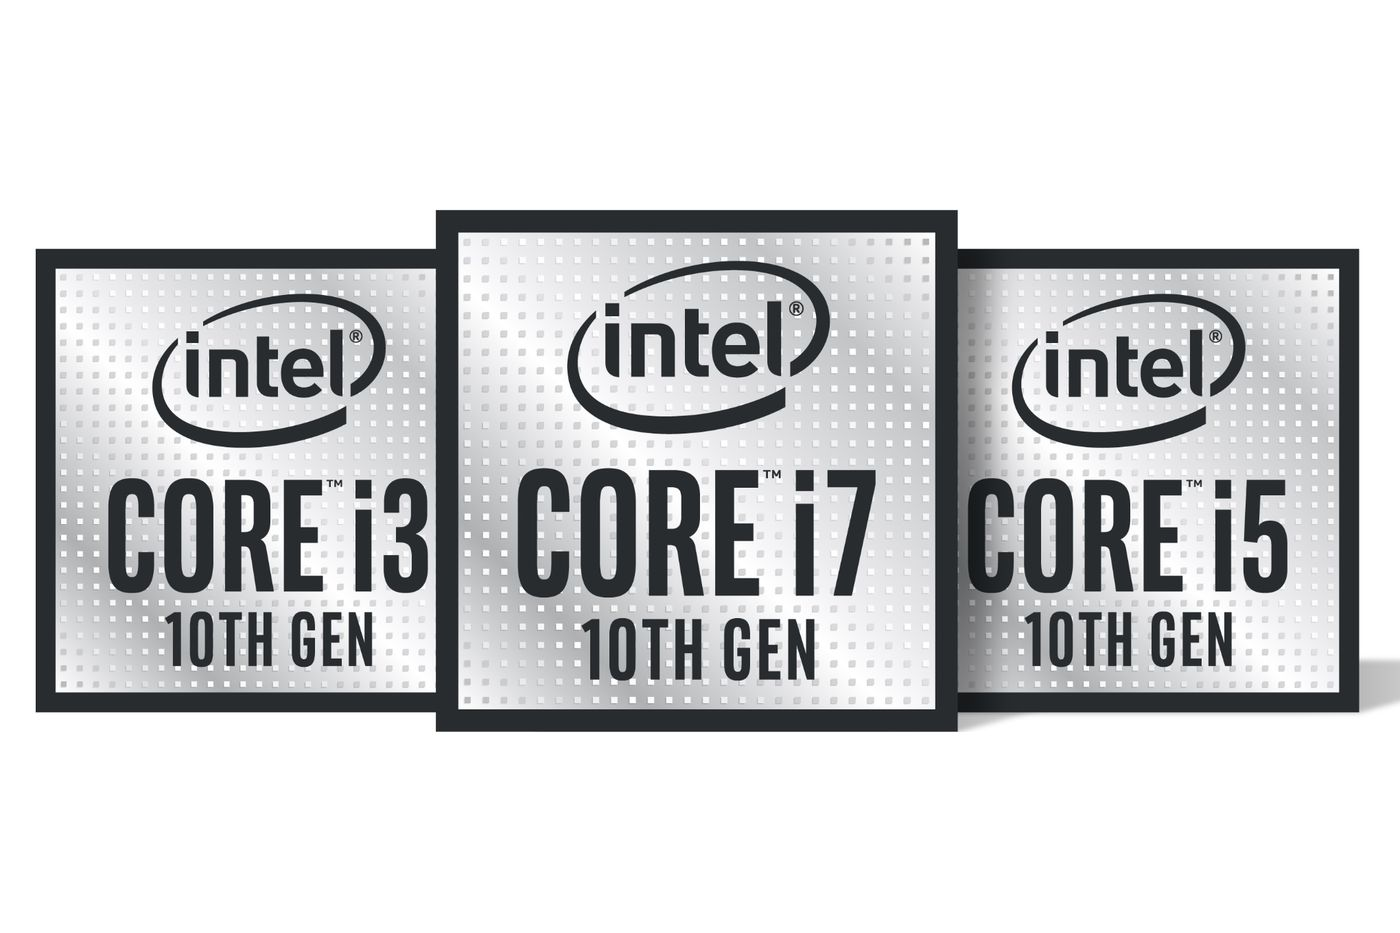 Intel introduces eight new 10th Gen Comet Lake processors - The Verge